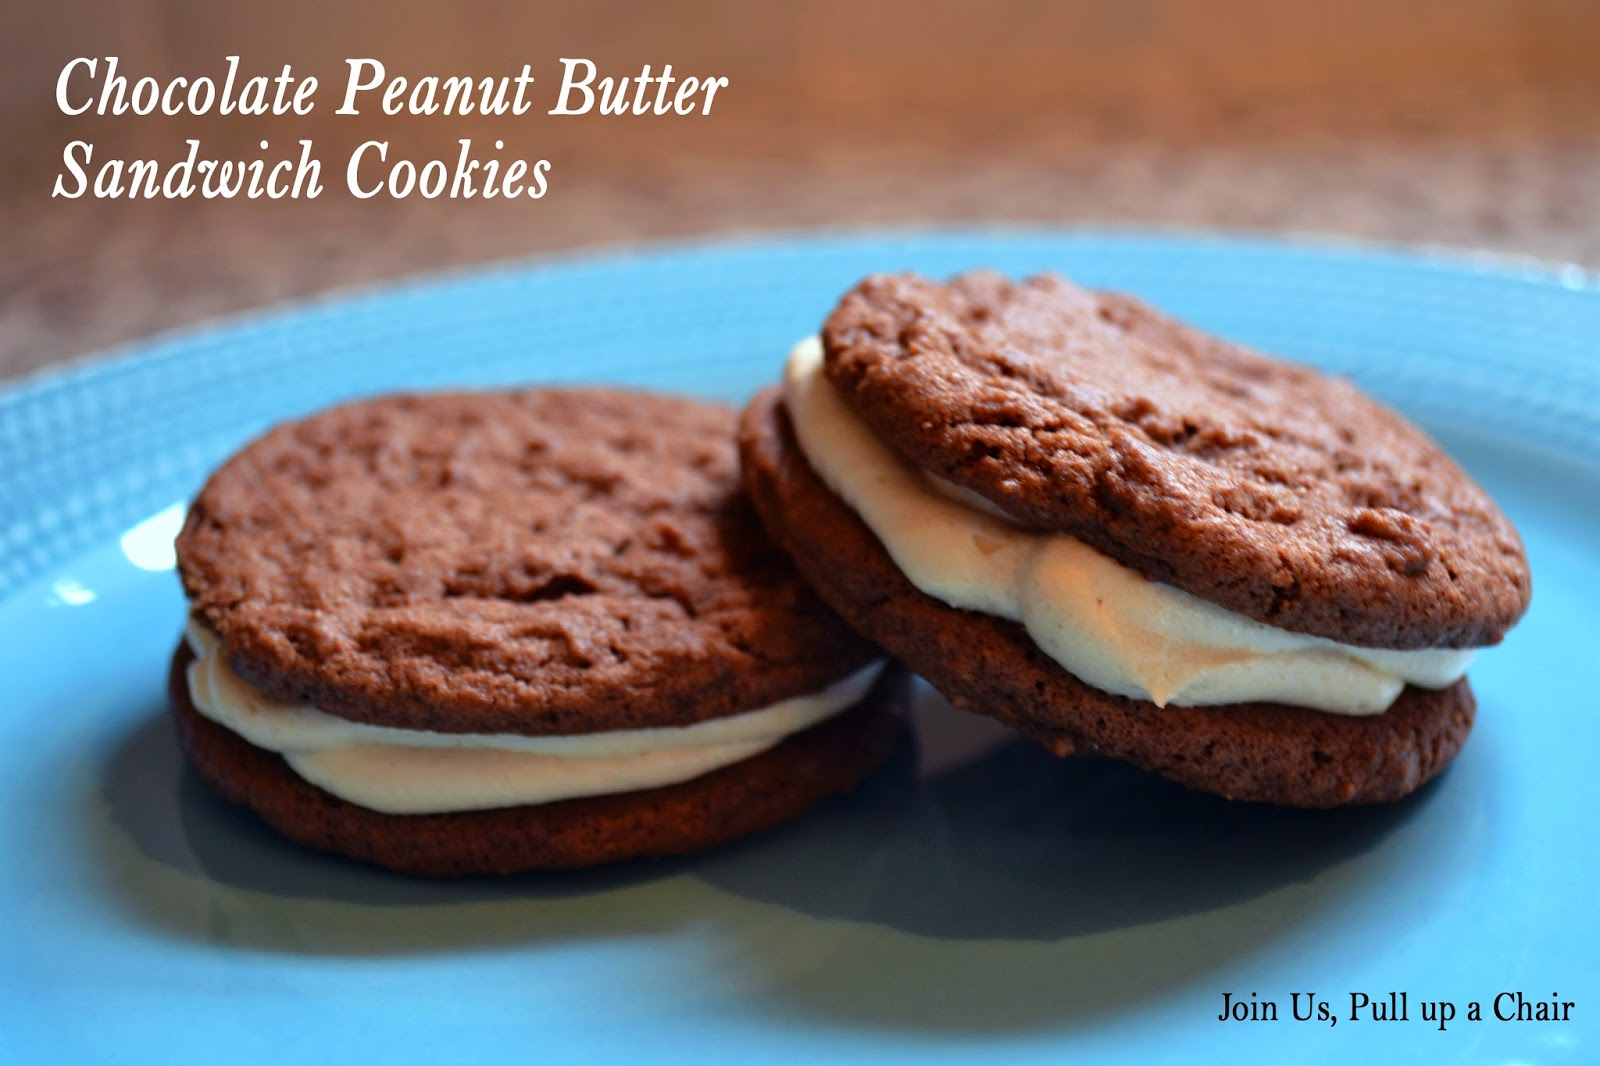 ... up a chair: Chocolate Peanut Butter Sandwich Cookies #FilltheCookieJar